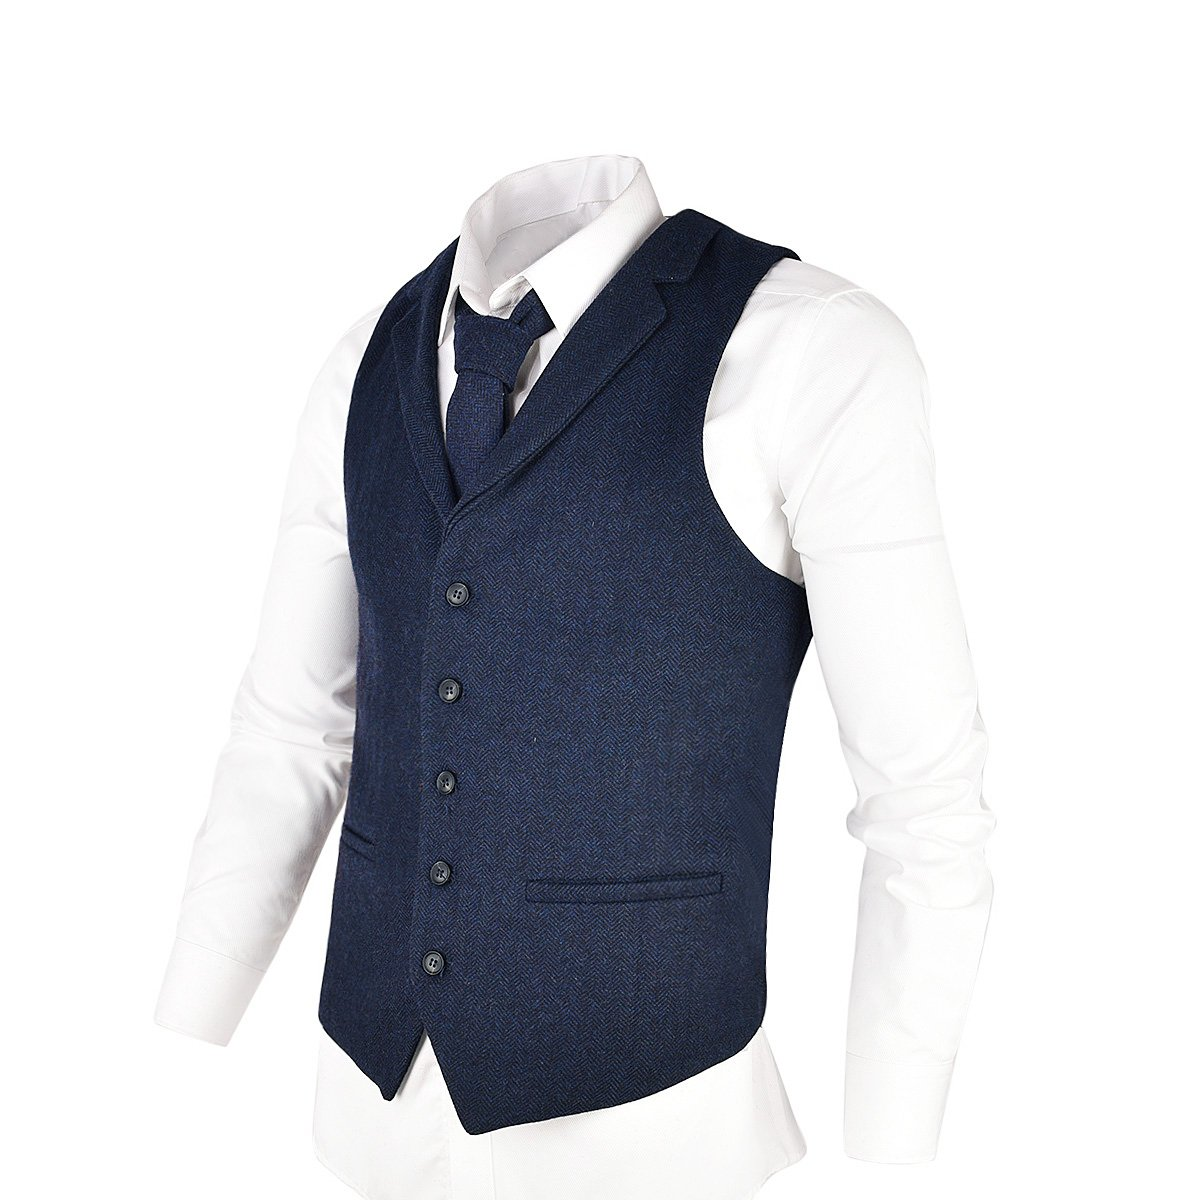 1920s Style Mens Vests VOBOOM Mens Herringbone Tailored Collar Waistcoat Fullback Wool Tweed Suit Vest £32.99 AT vintagedancer.com